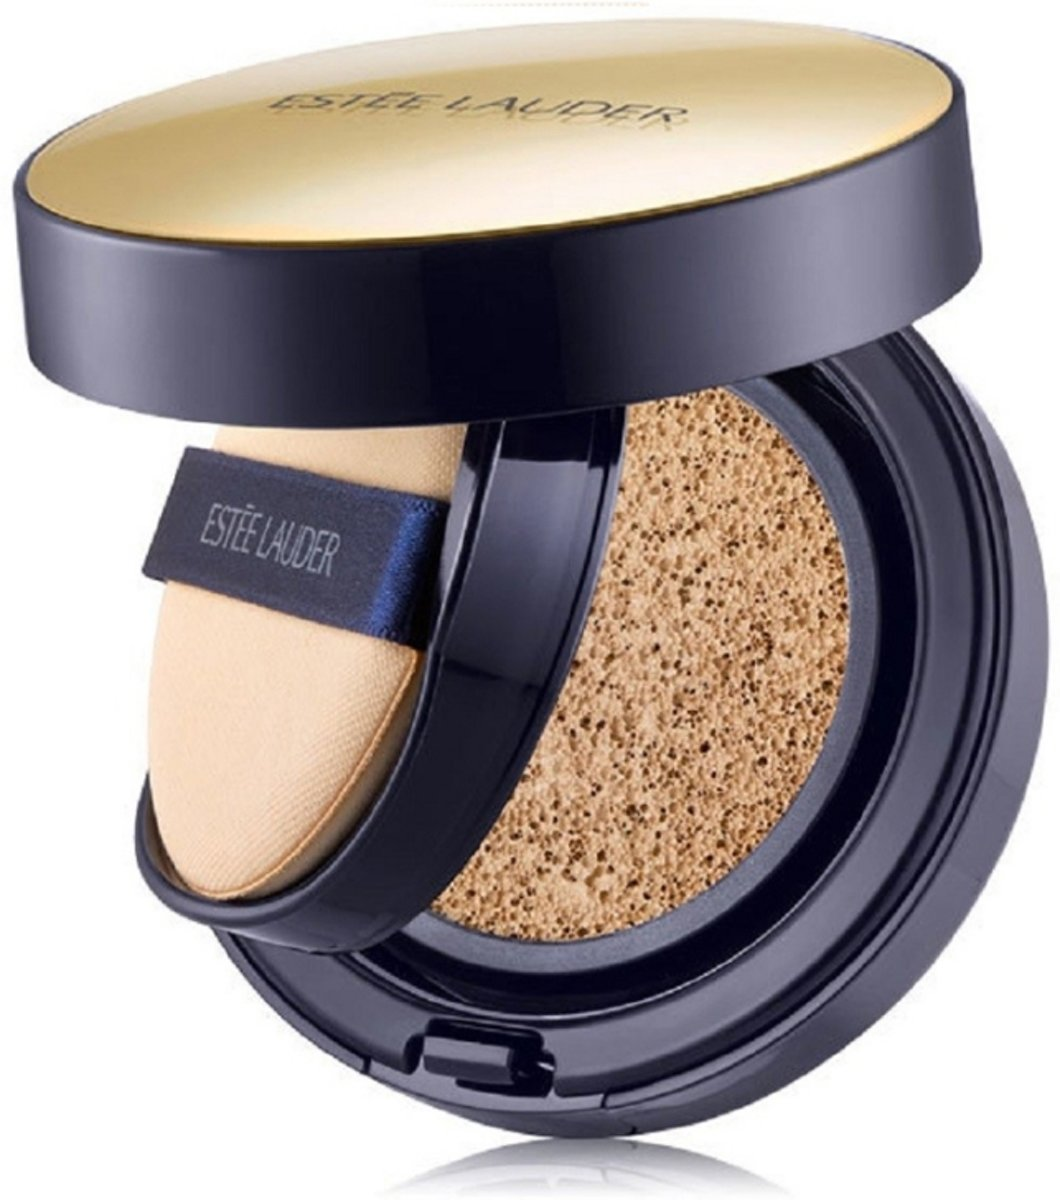 Estée Lauder Double Wear All Day Wear Liquid Compact Foundation Foundation 12 gr - 2C3 - Fresco